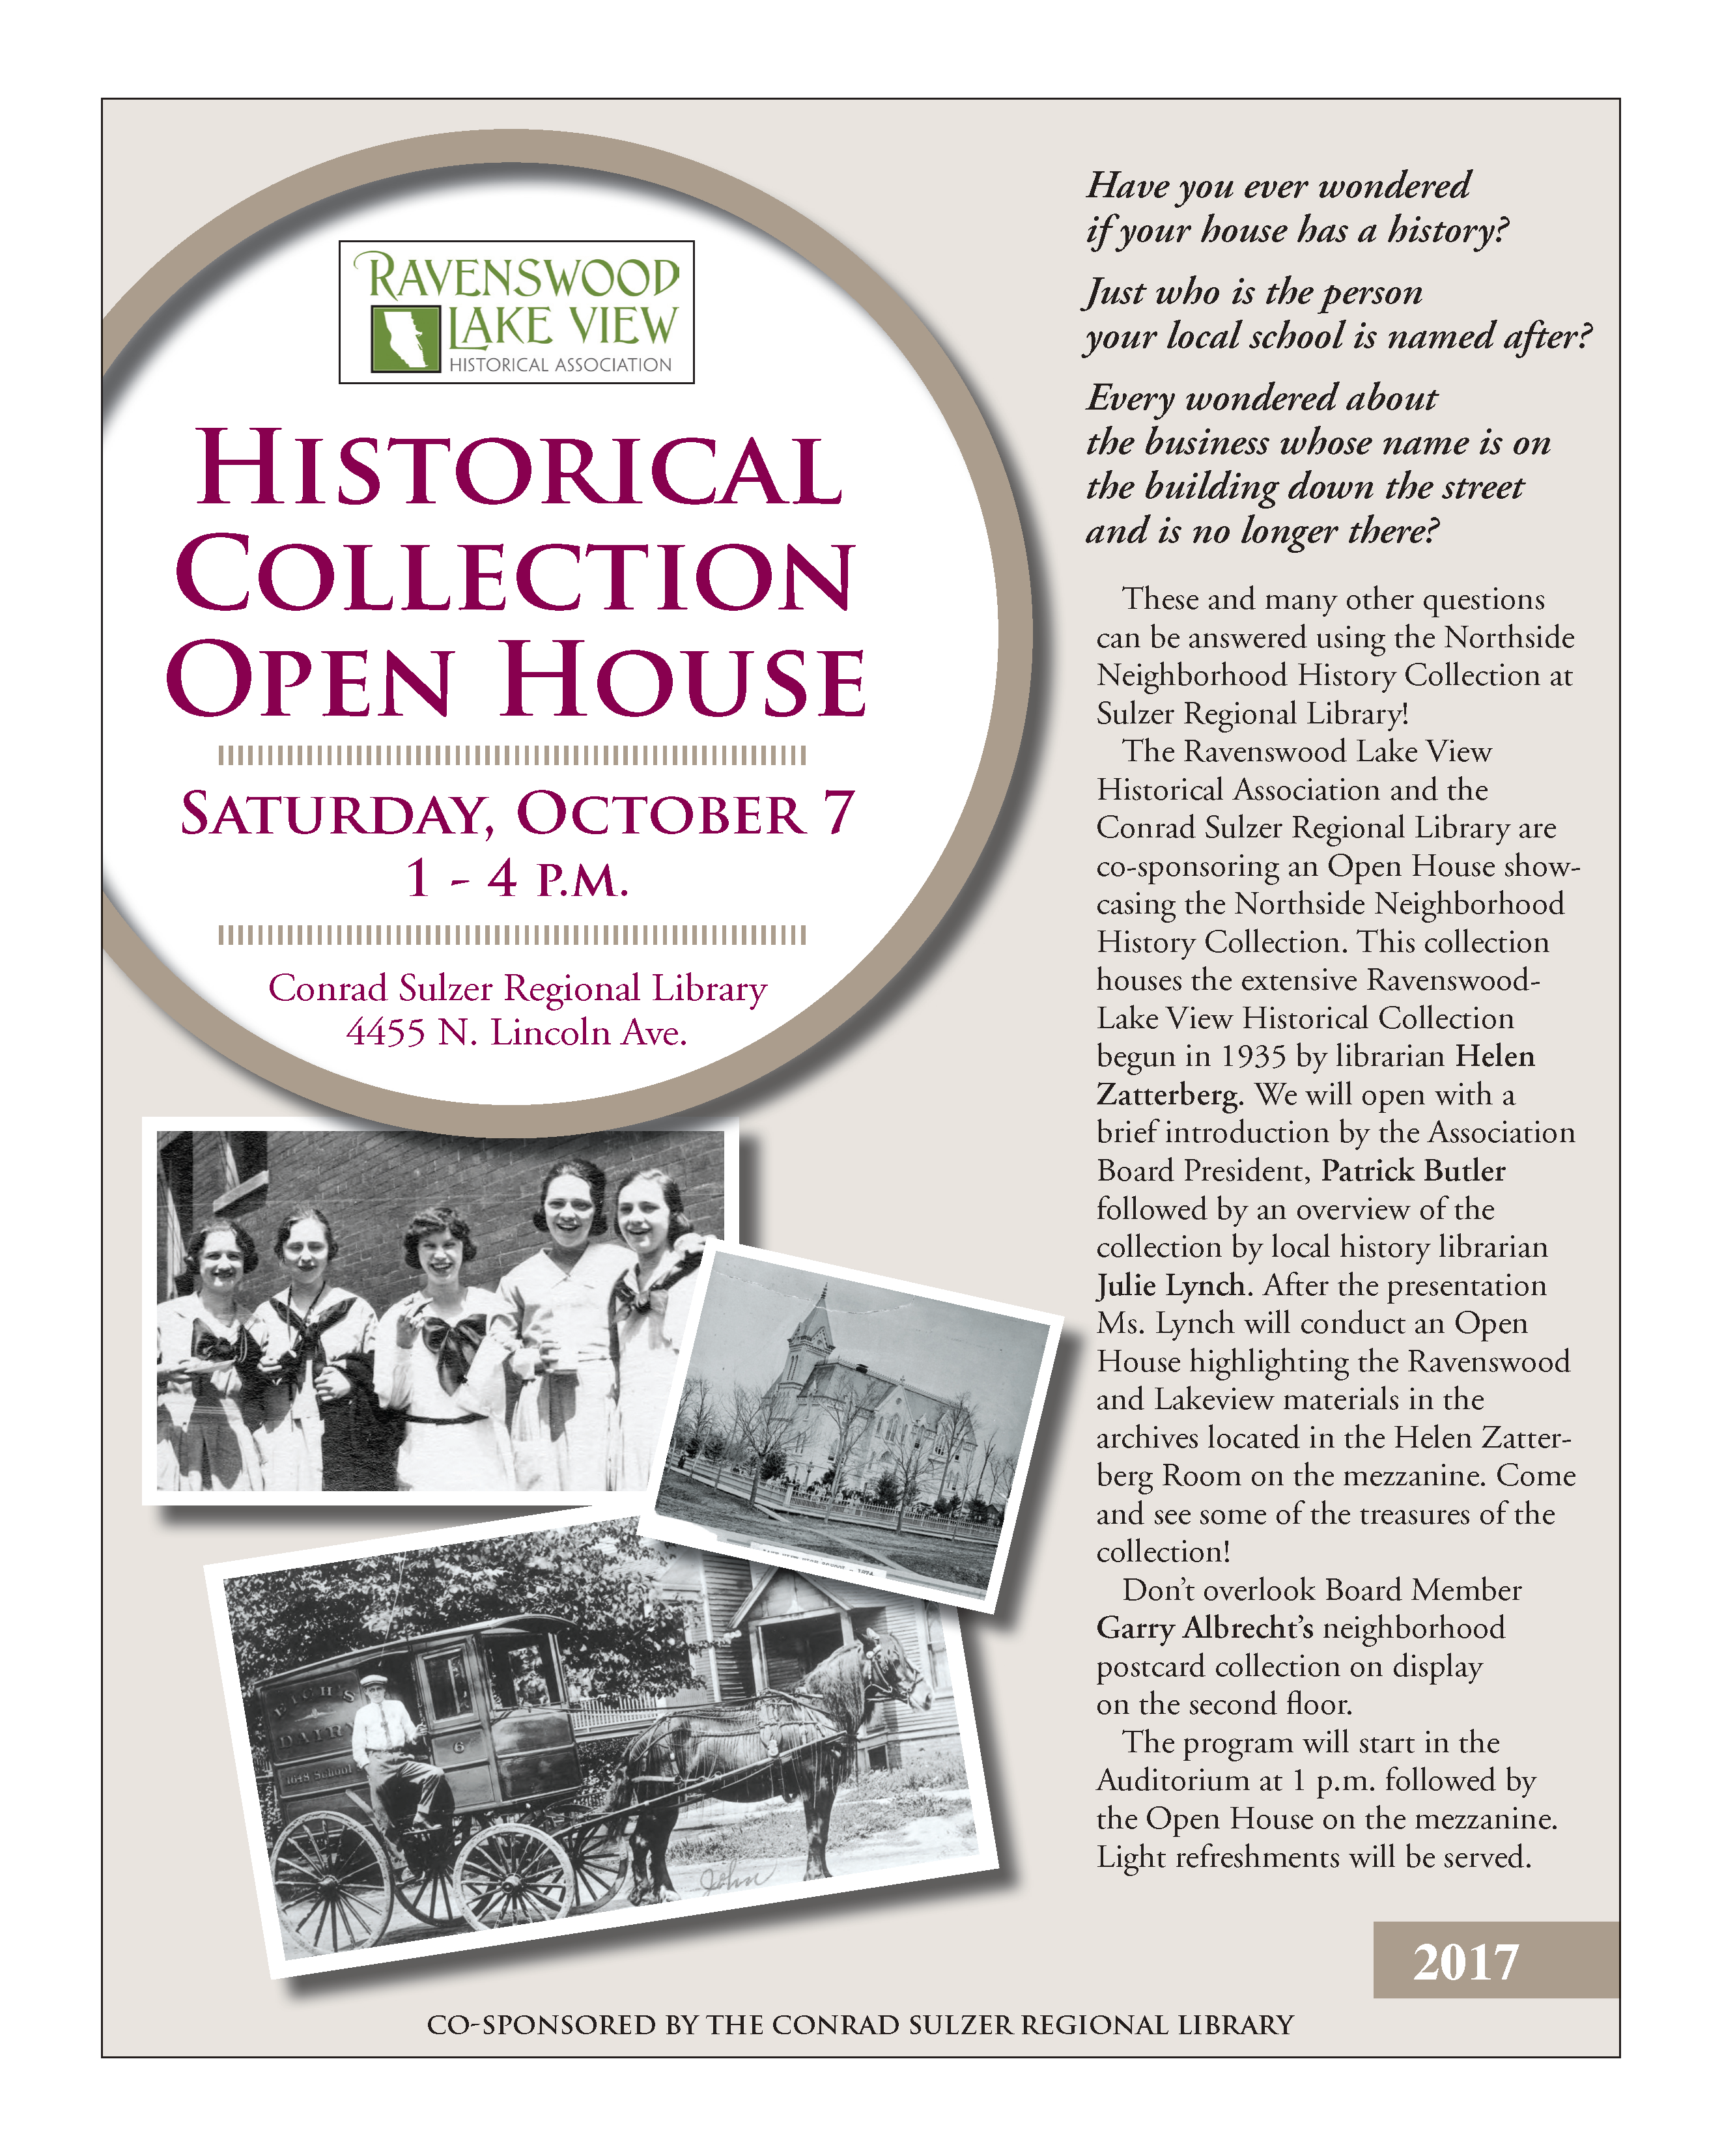 Historical Collection Open House - October 7, 1-4 pm - Conrad Sulzer Regional Library, 4455 N Lincoln Ave